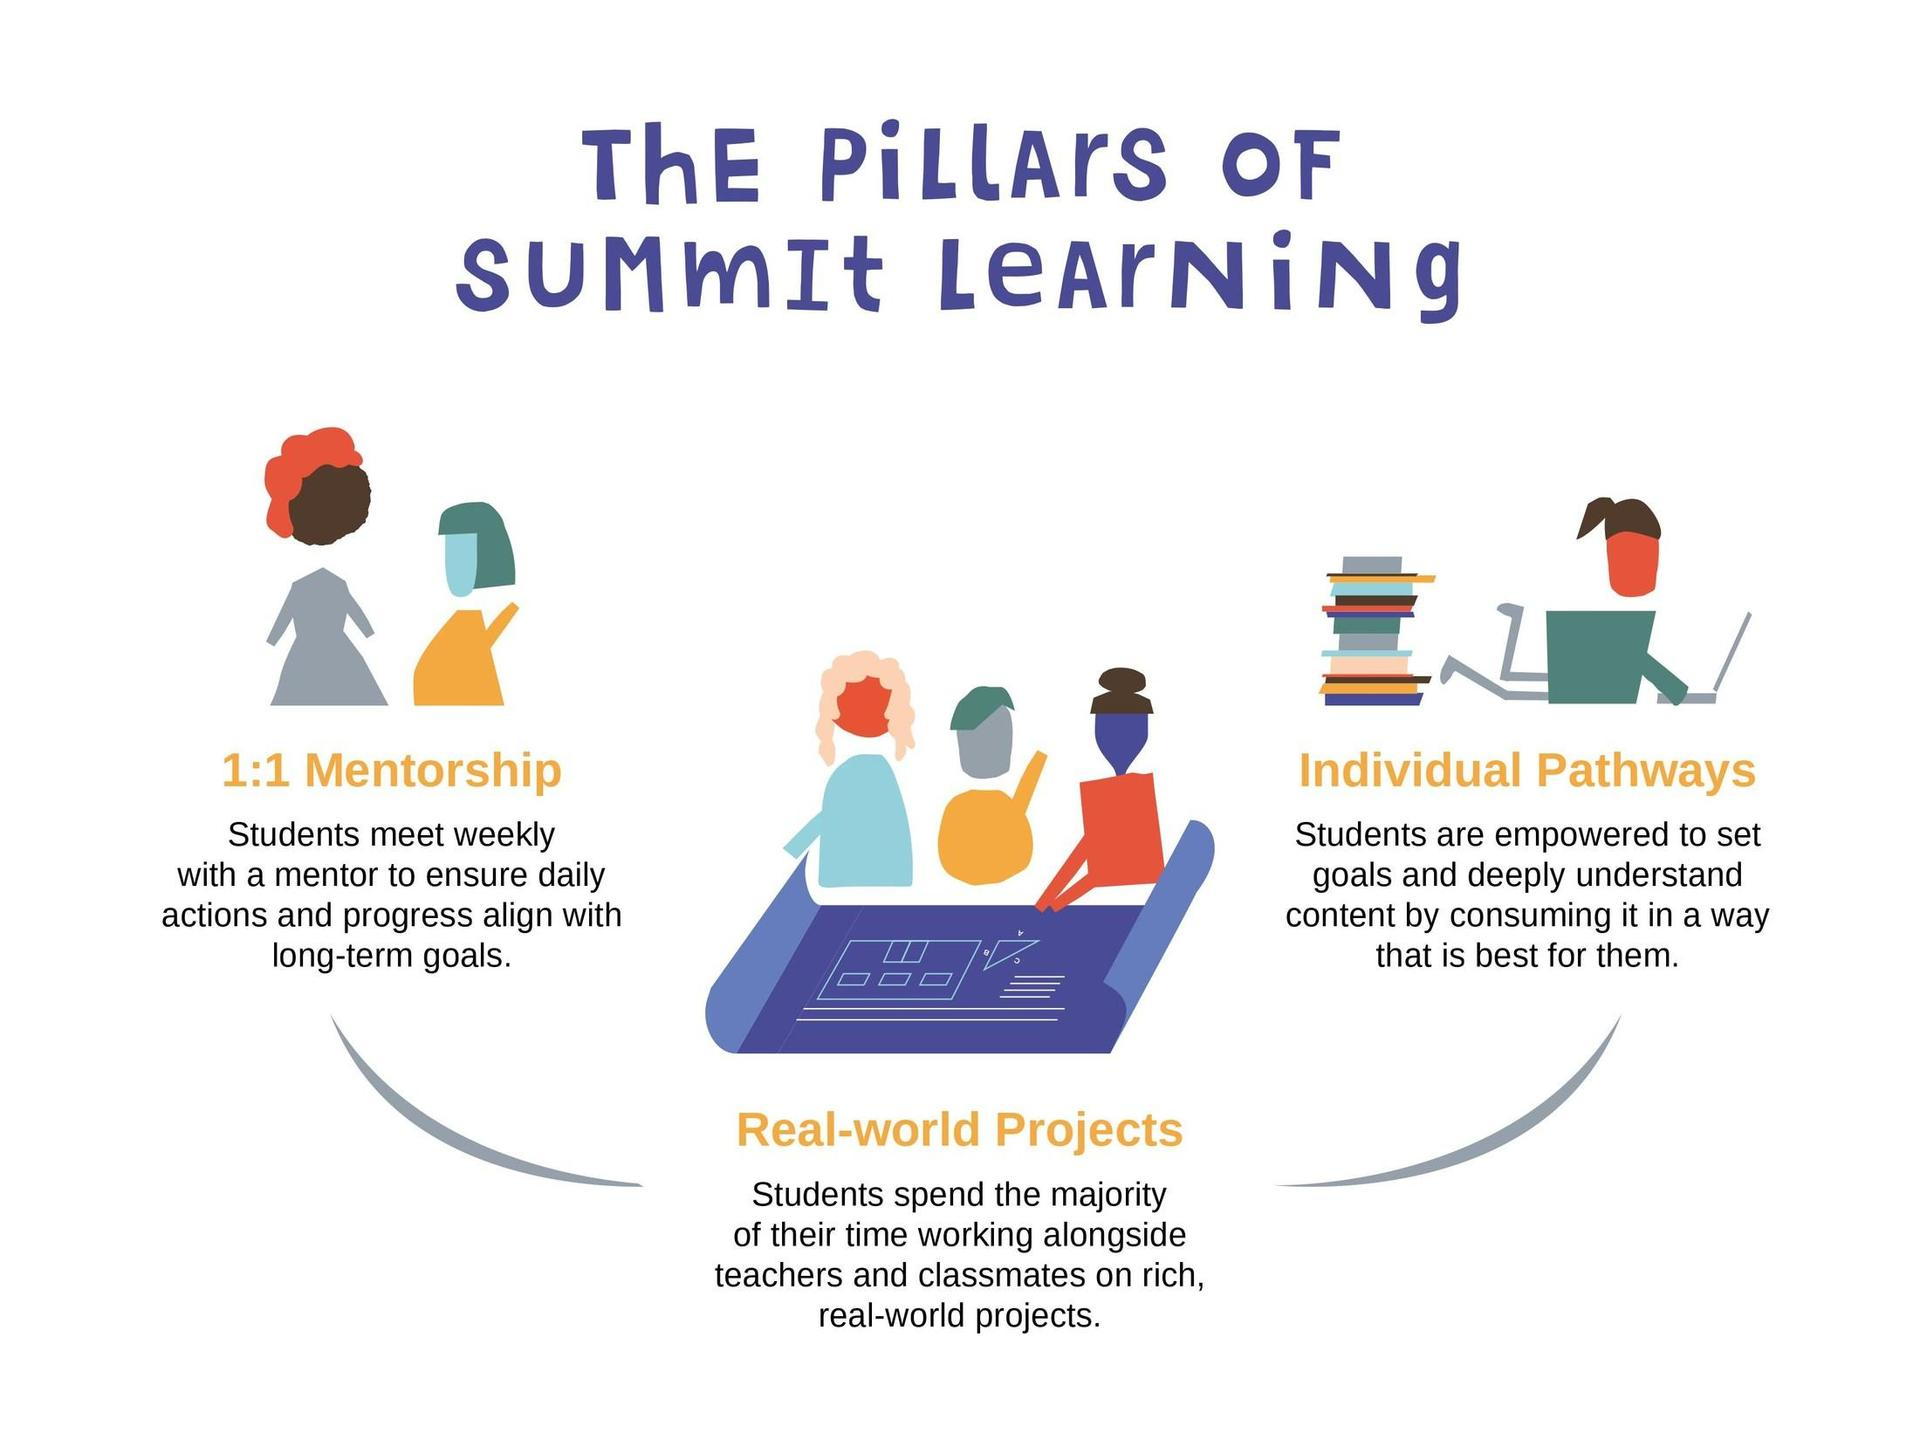 Pillars of learning for summit